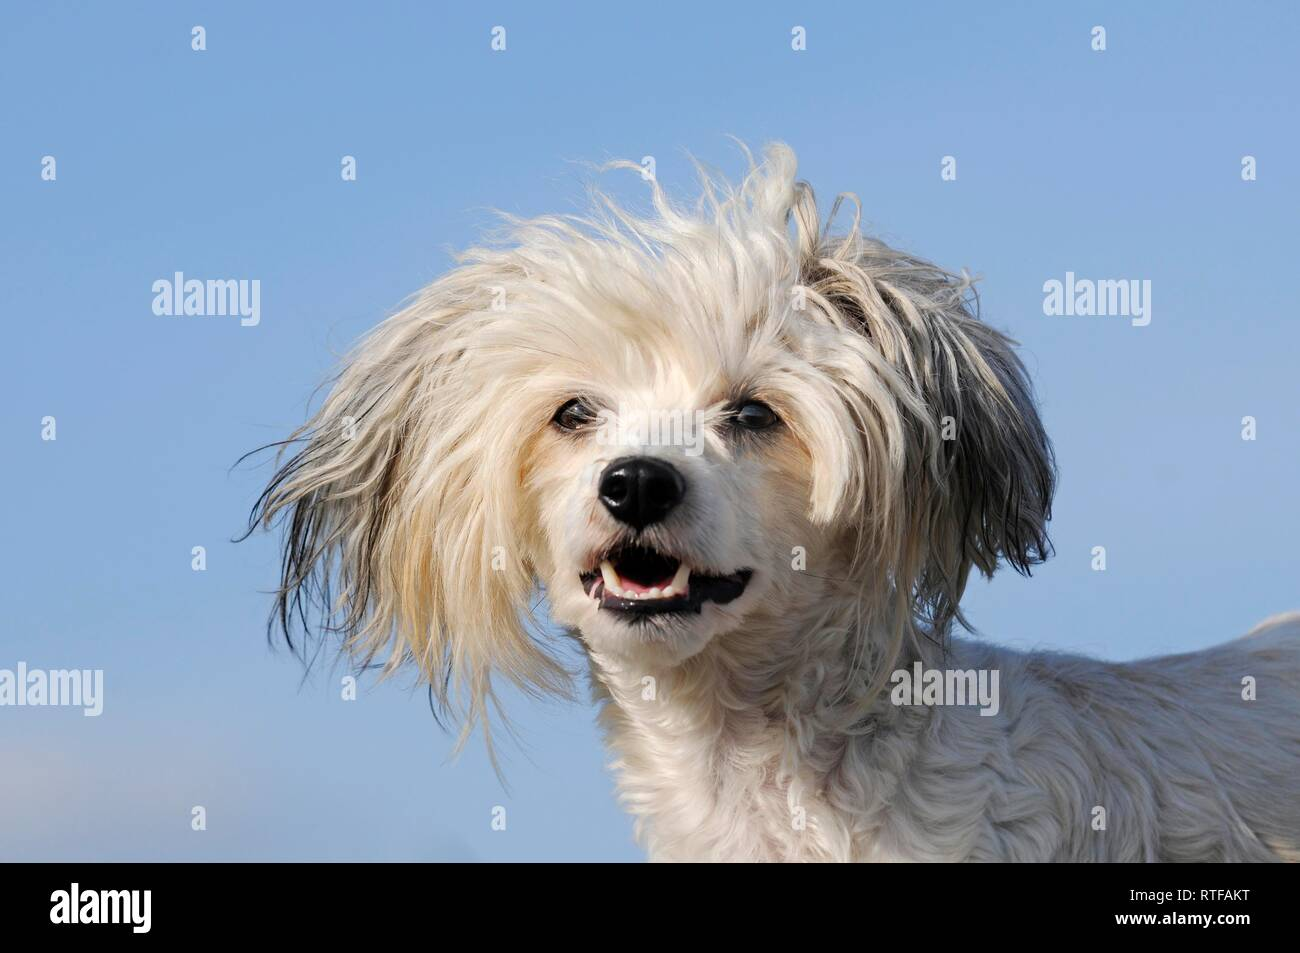 Chinese Crested Hairless Dog, animal portrait, Austria - Stock Image